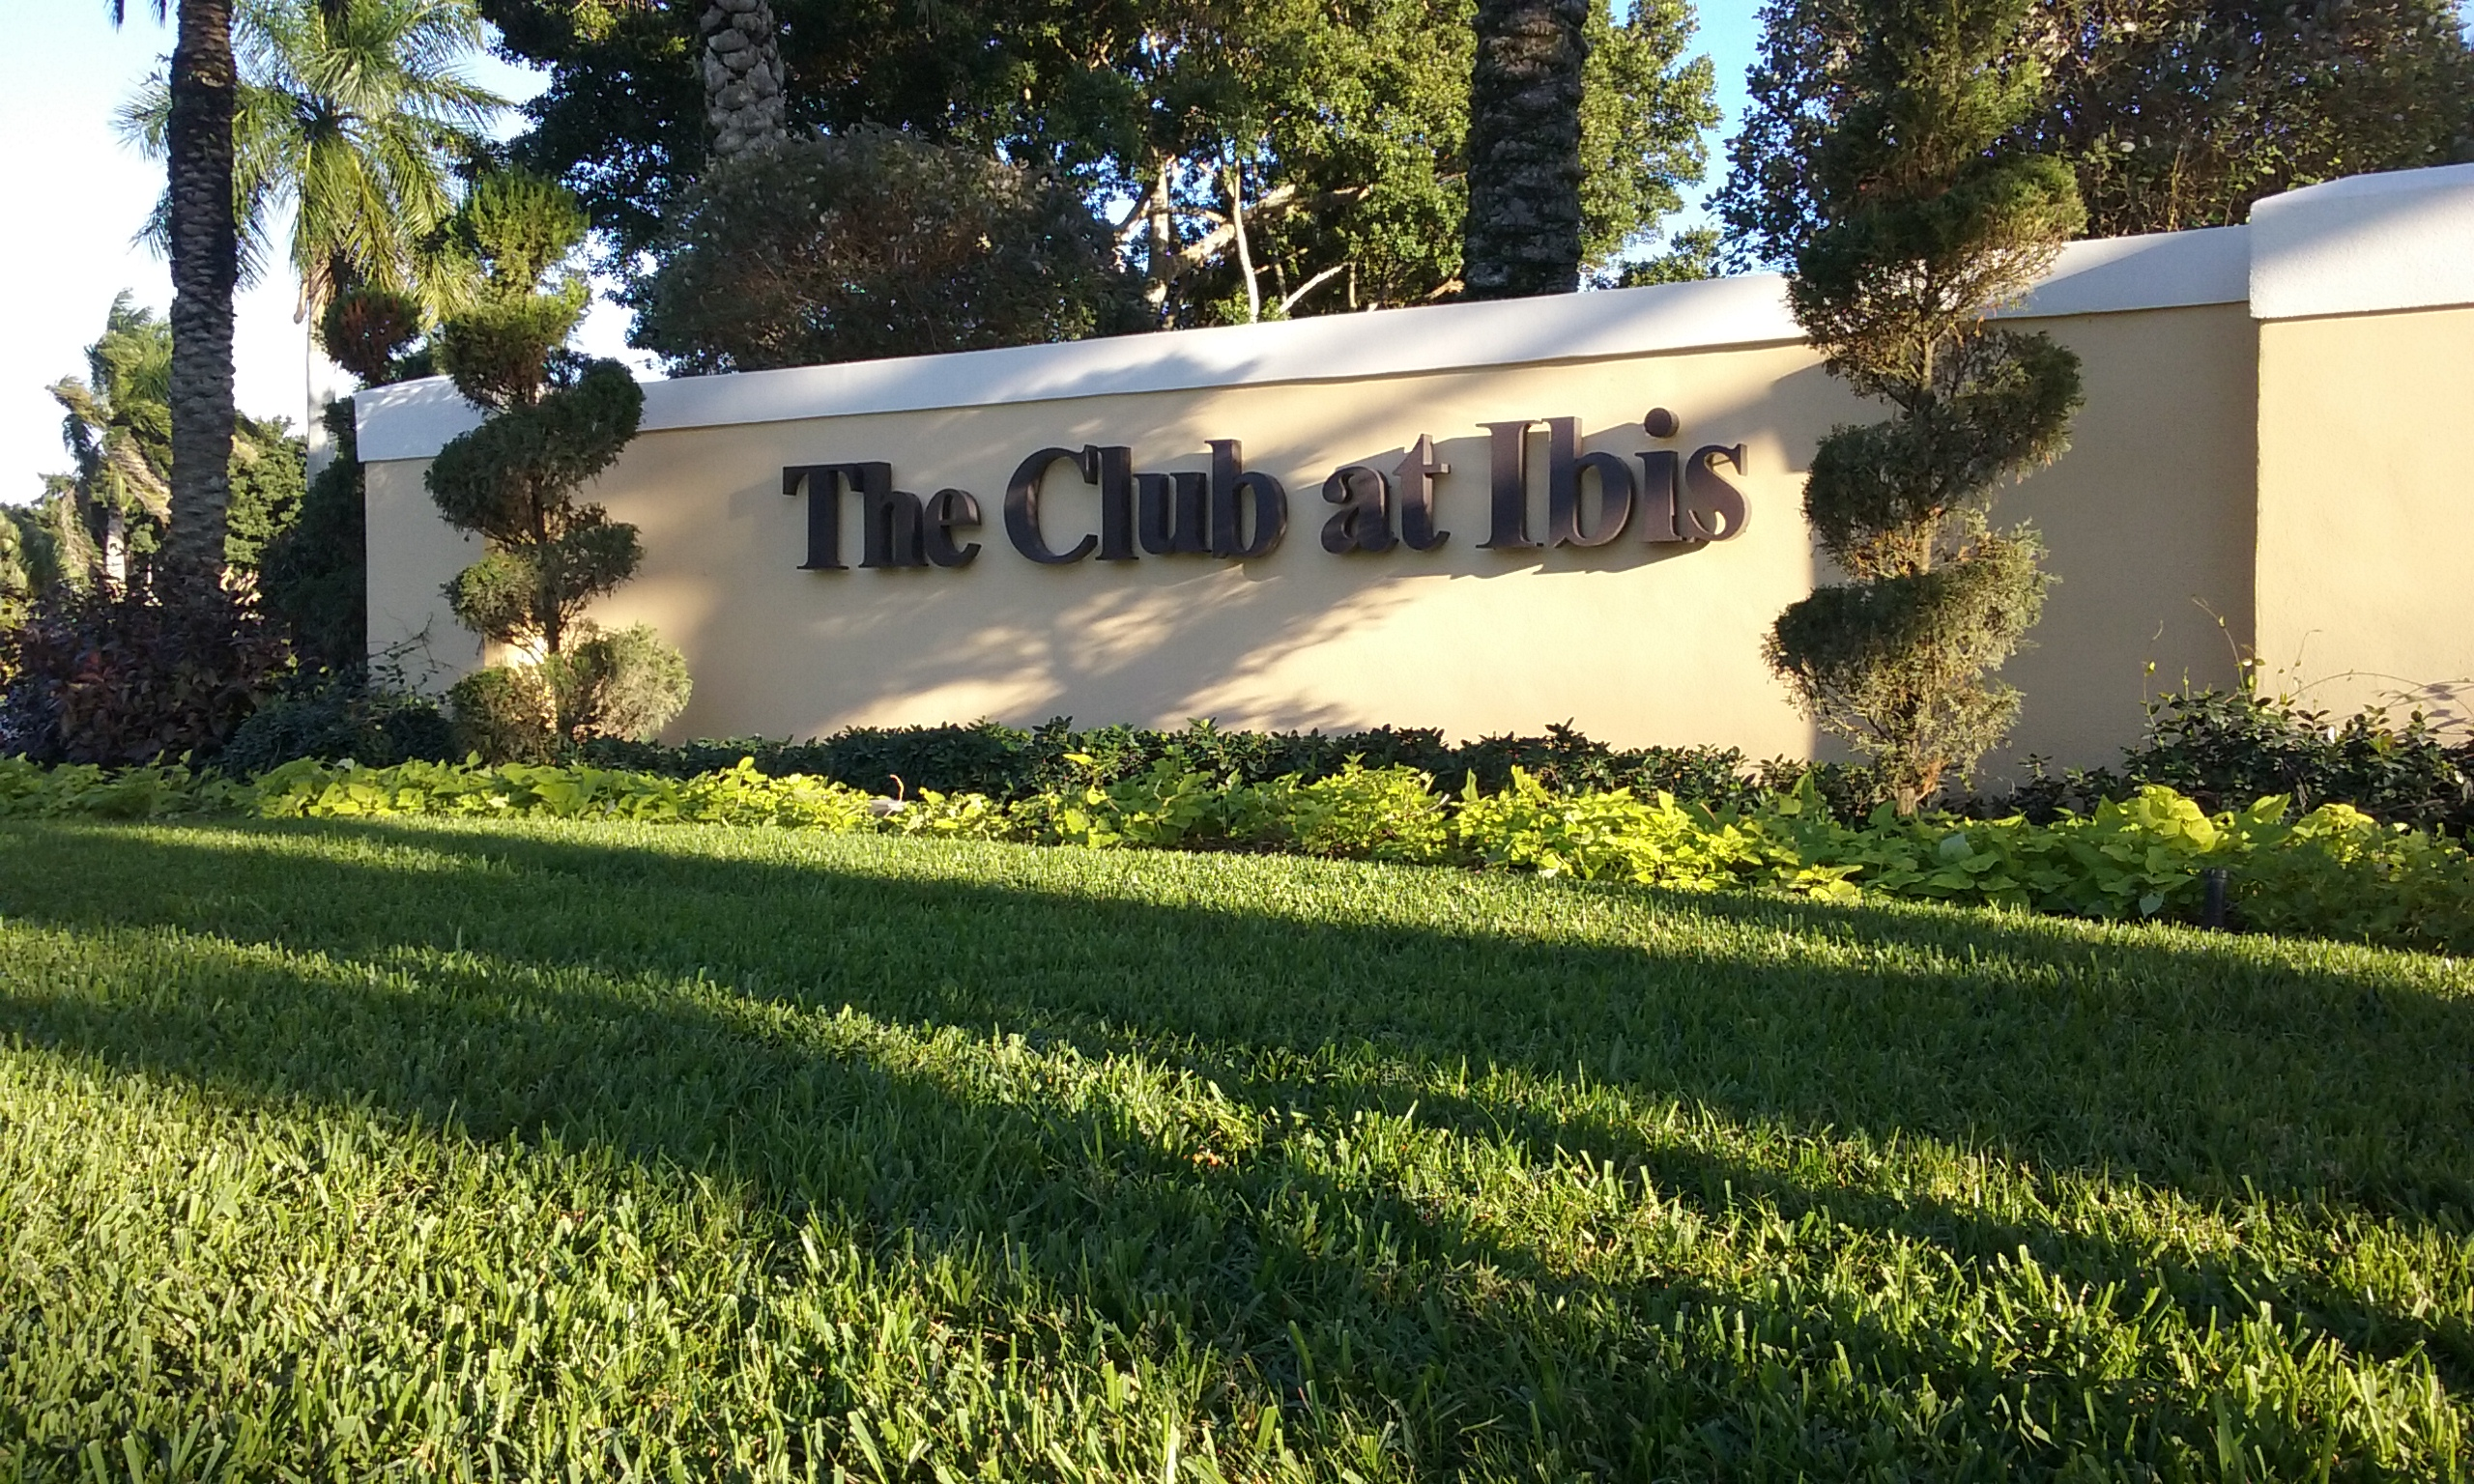 Channel Letters for County Clubs in West Palm Beach FL